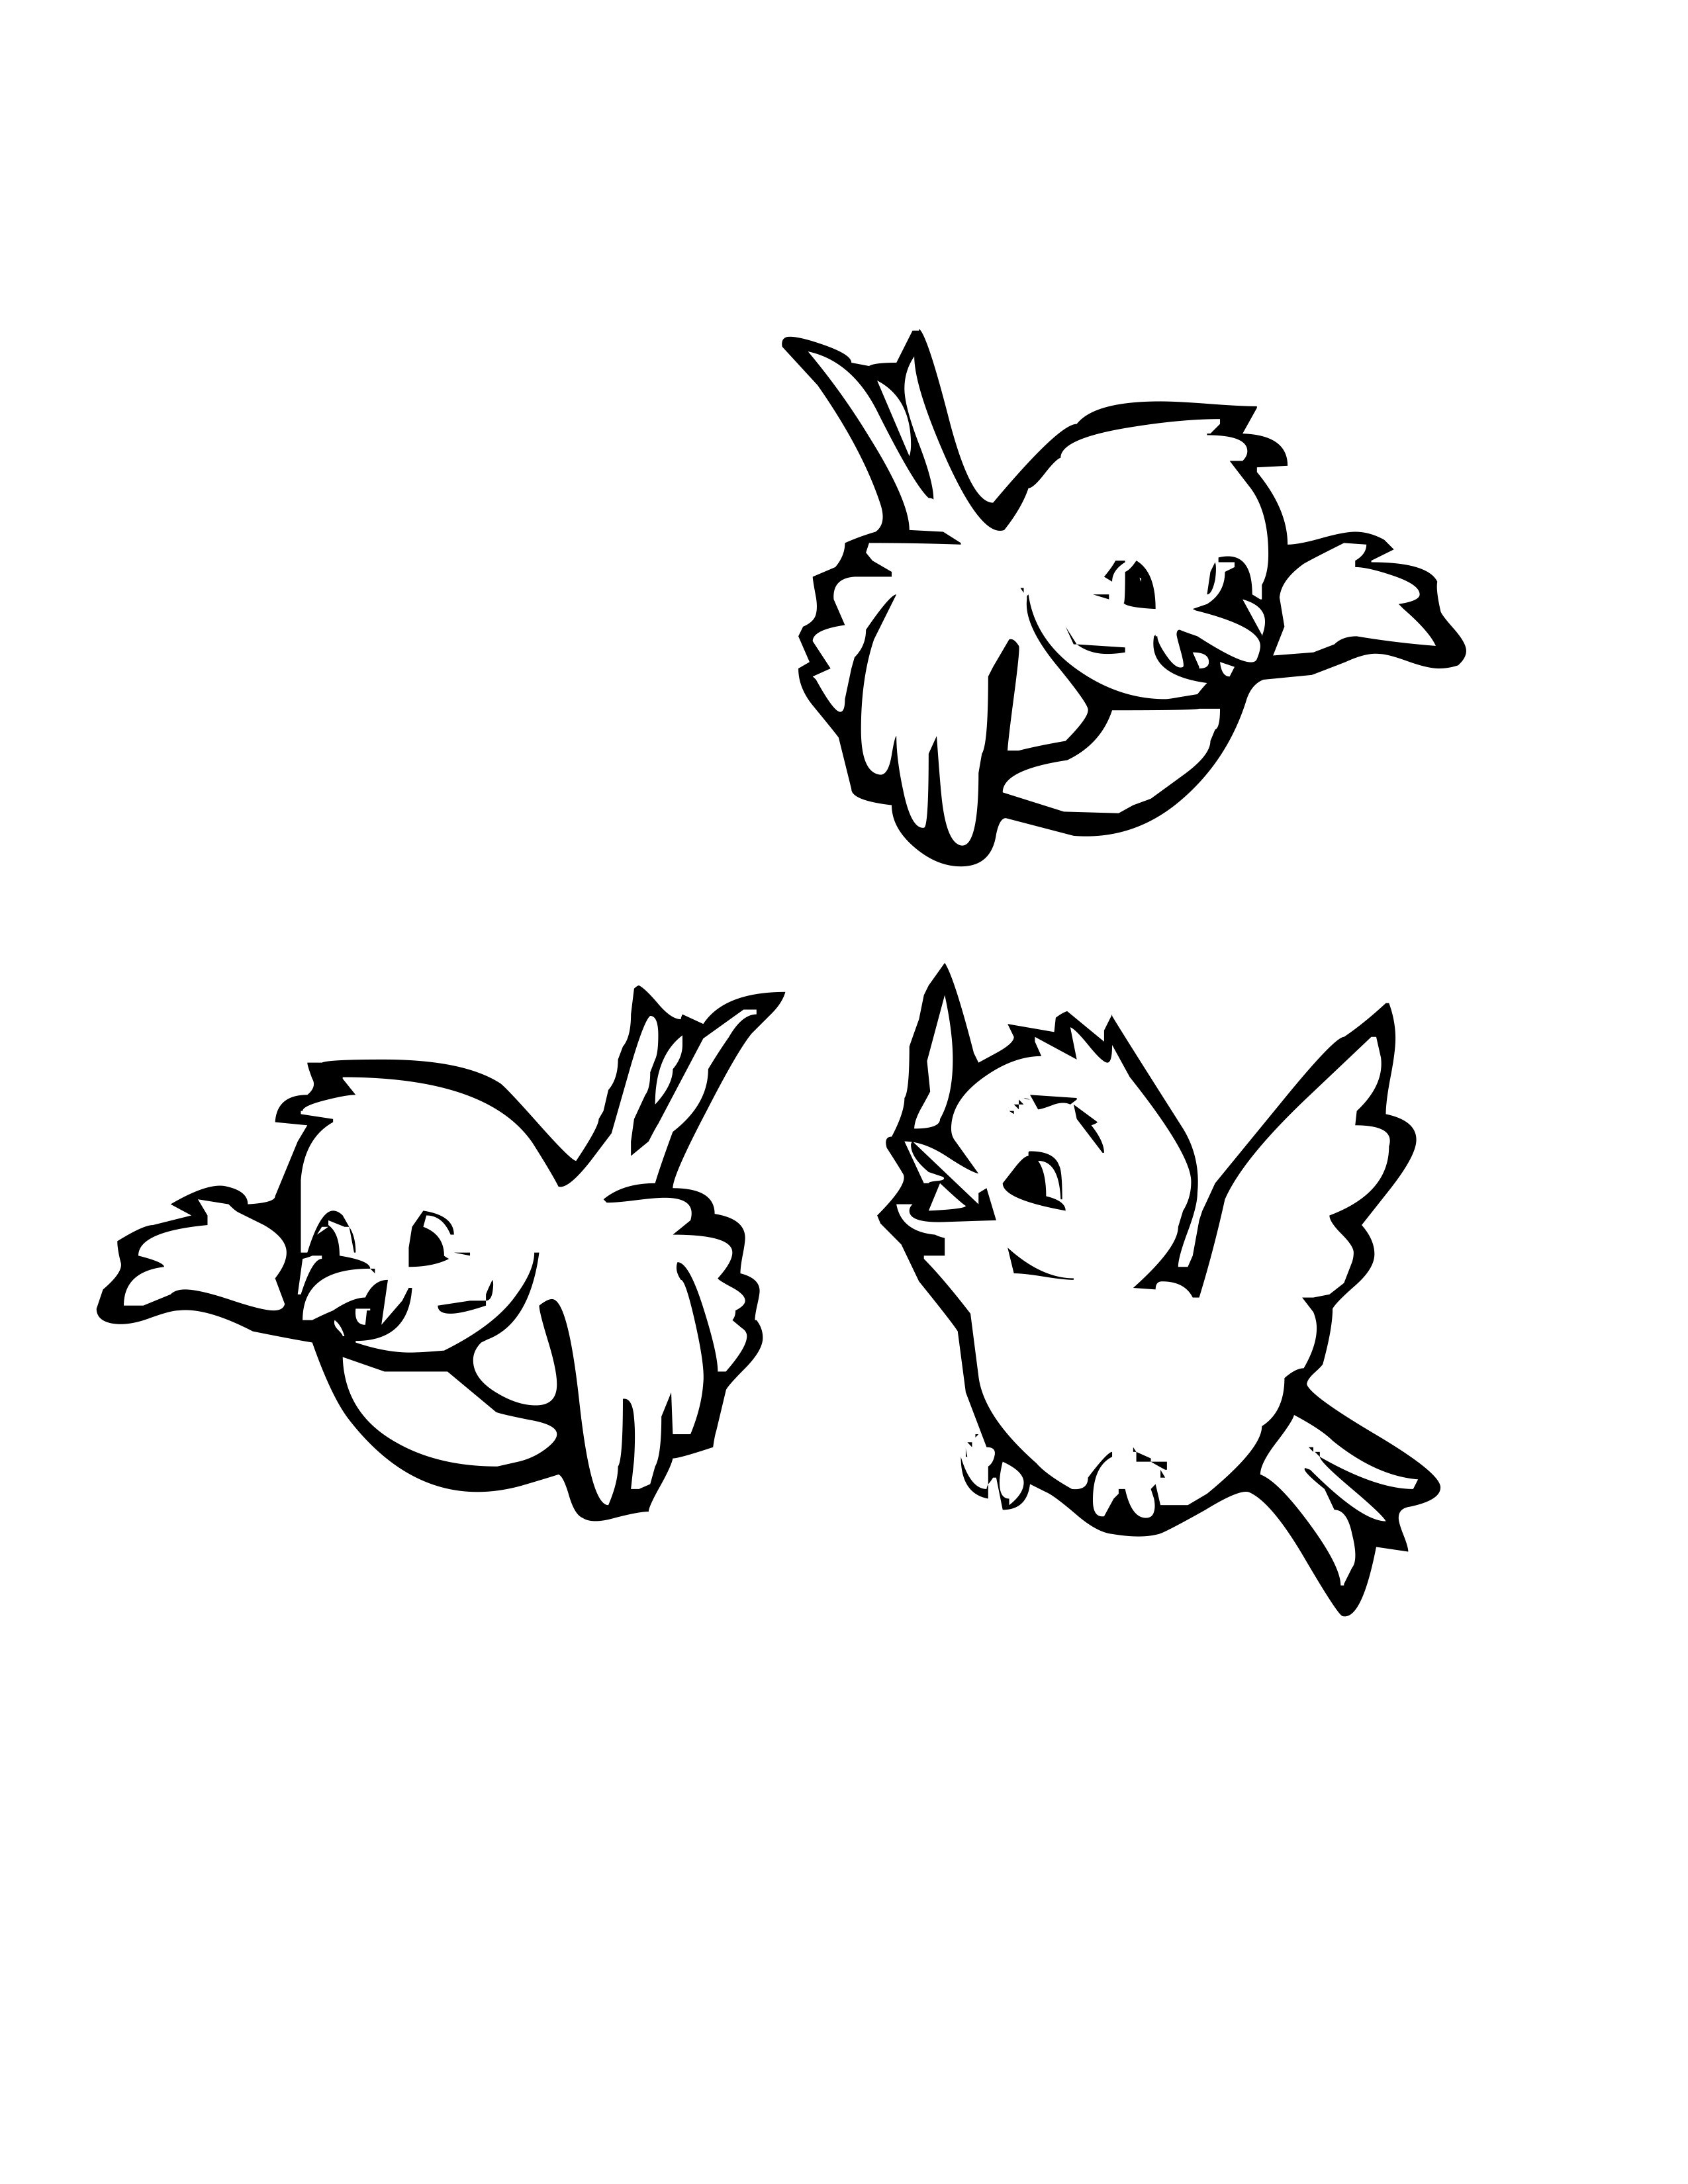 Baby Birds Drawing at GetDrawings.com | Free for personal use Baby ...